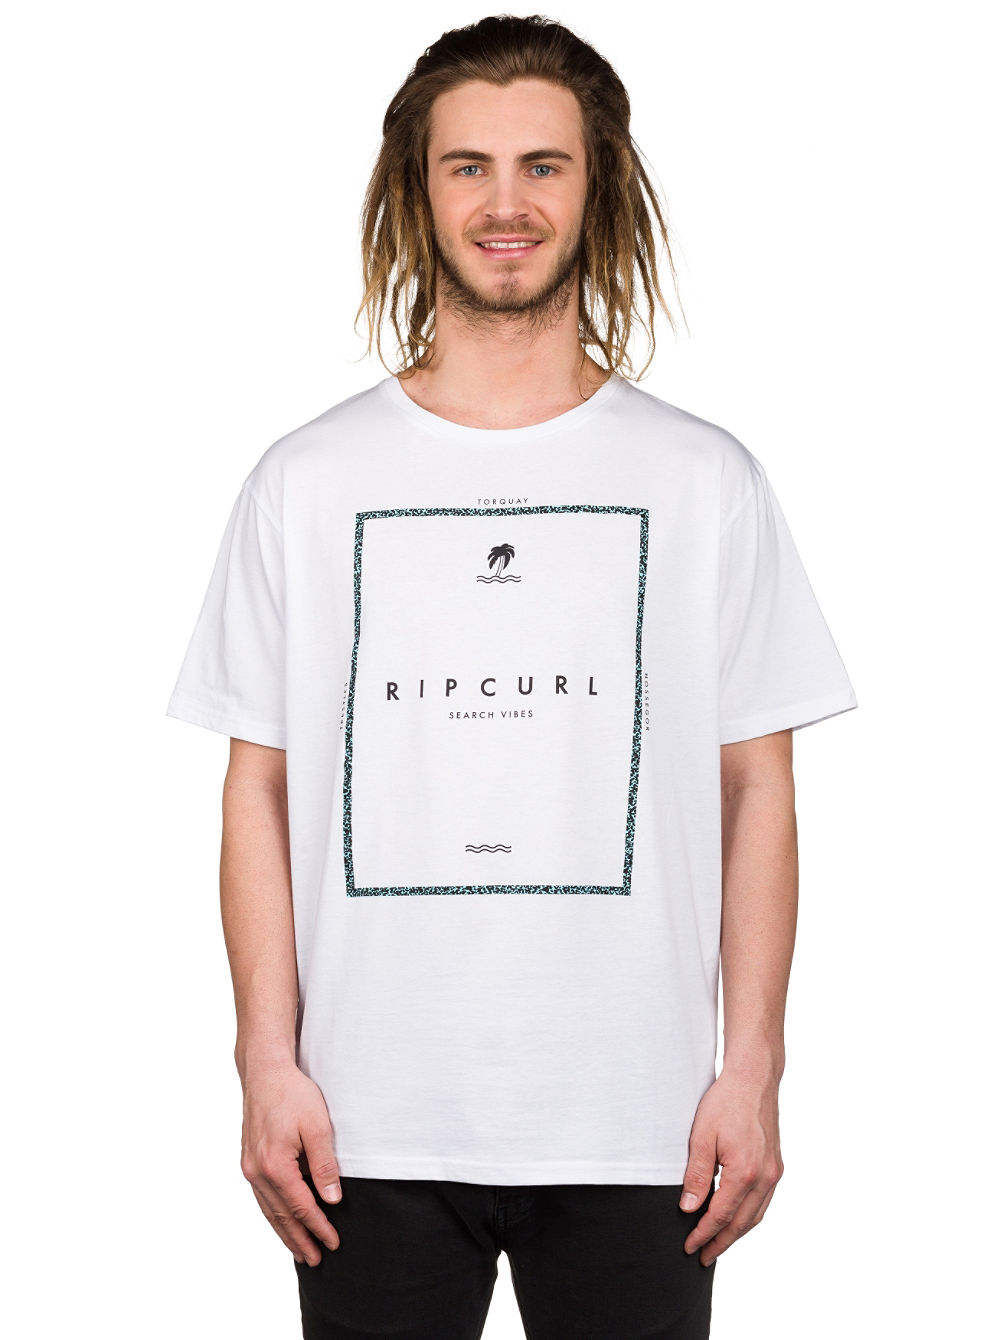 rip-curl-rectangle-search-vibes-t-shirt